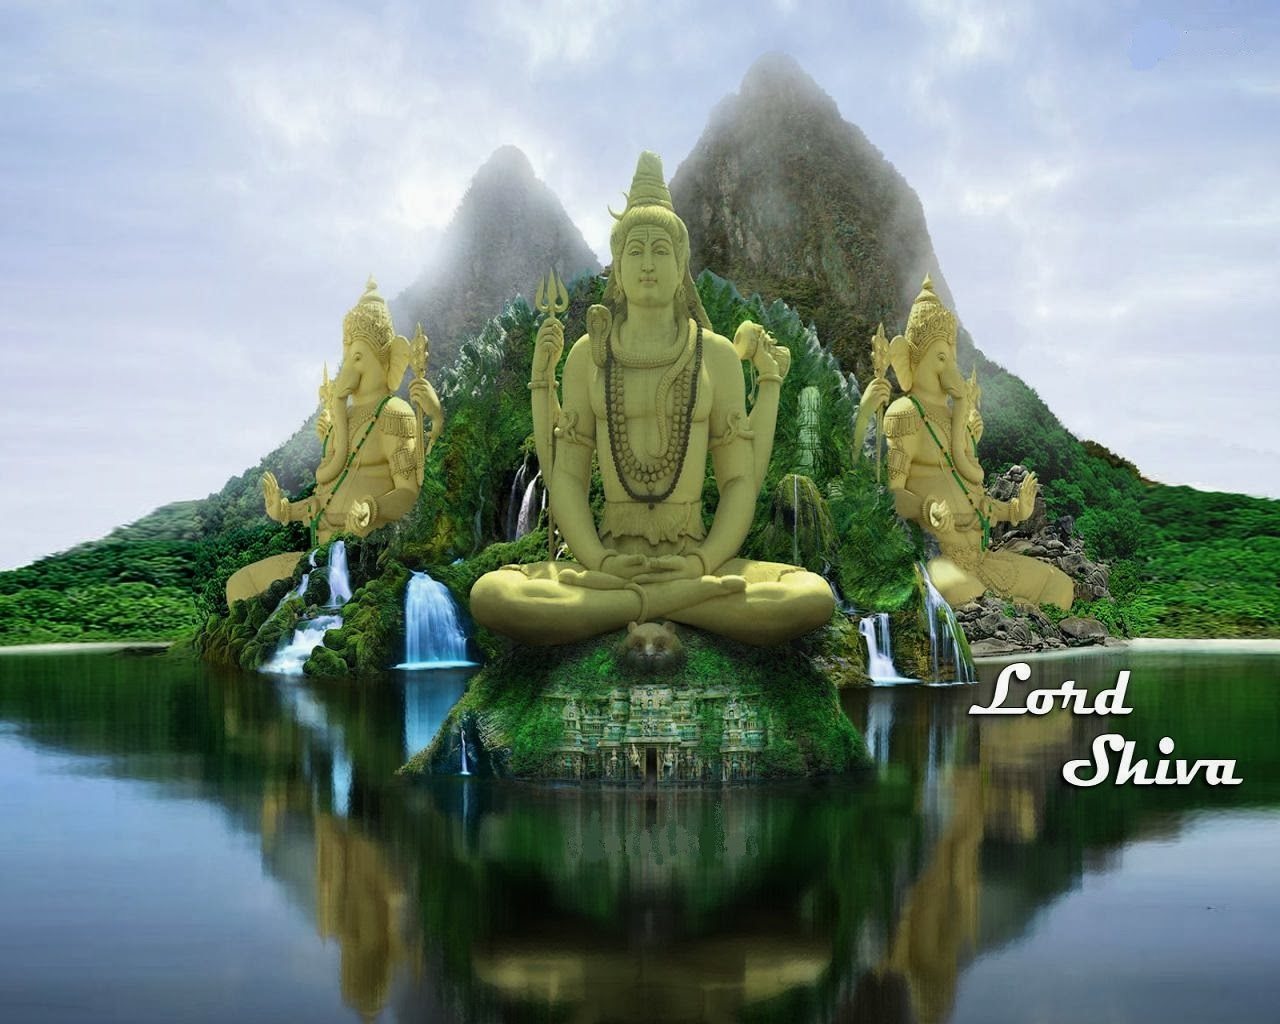 Good Night Hd Wallpaper 3d Love Top Best God Shiv Ji Images Photographs Pictures Hd